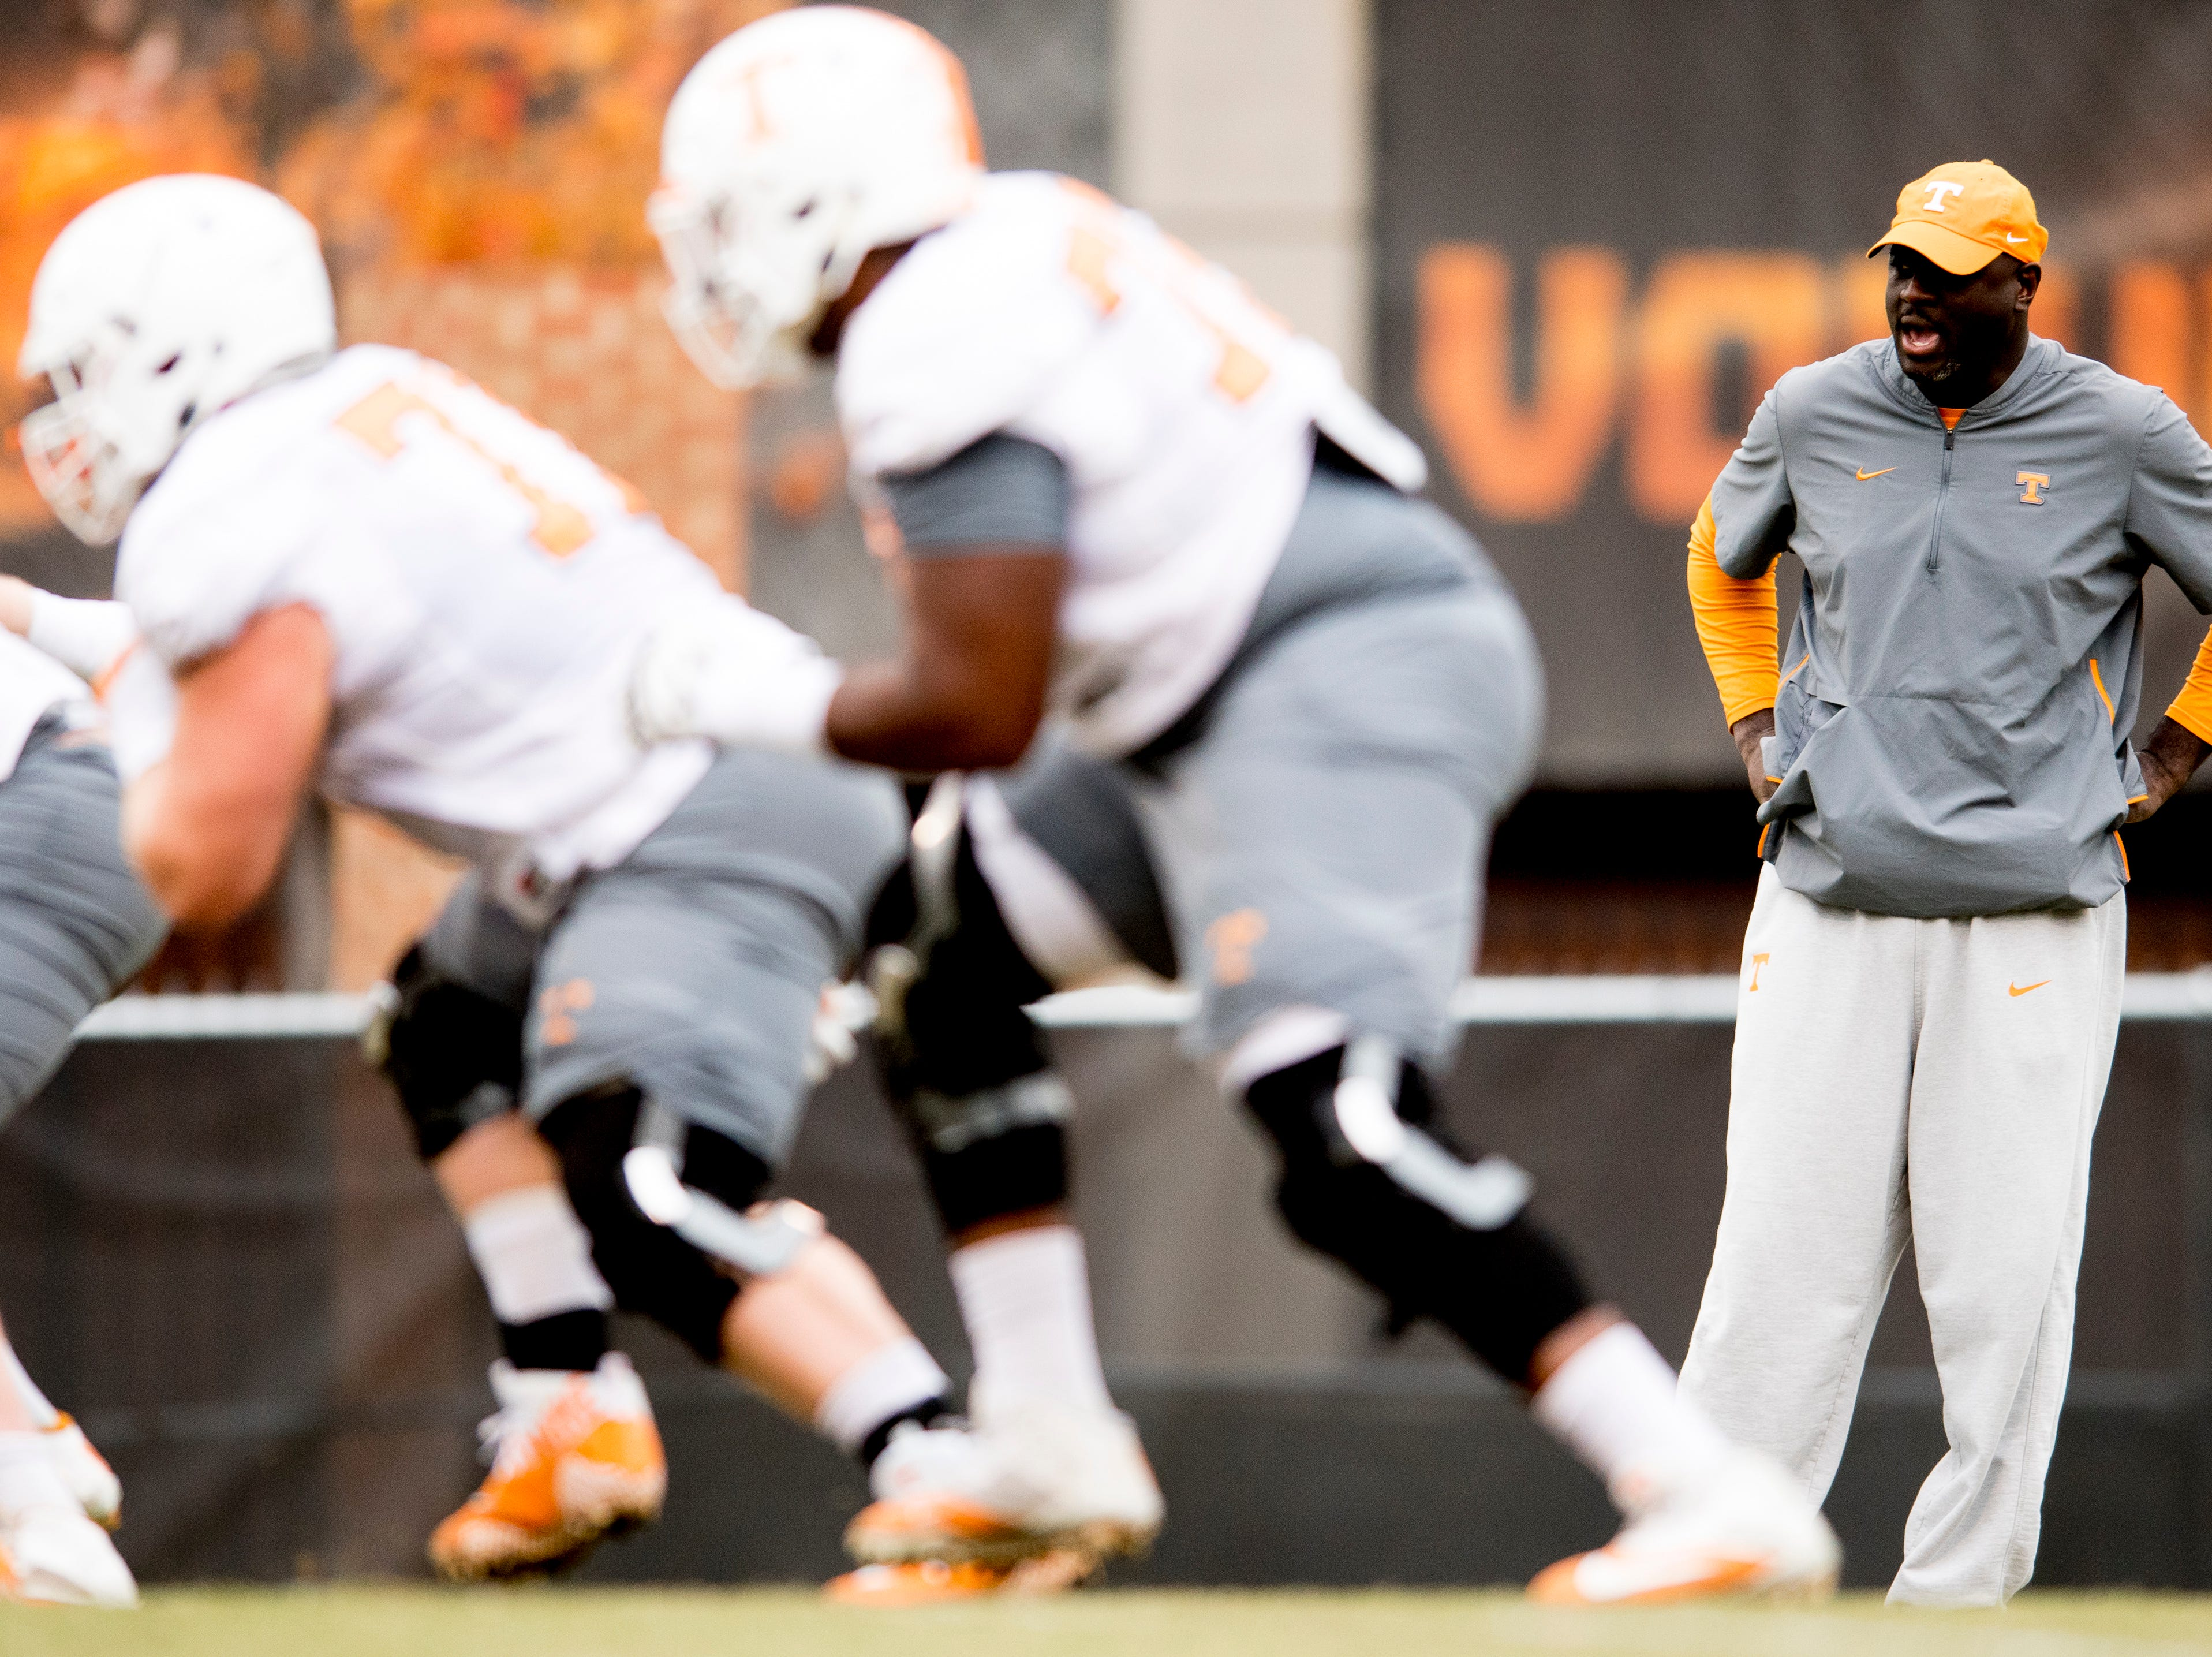 Tennessee Co-Defensive Coordinator / Outside Linebackers Coach Chris Rumph watches as players drill during Tennessee fall football practice at Haslam Field in Knoxville, Tennessee on Wednesday, November 7, 2018.